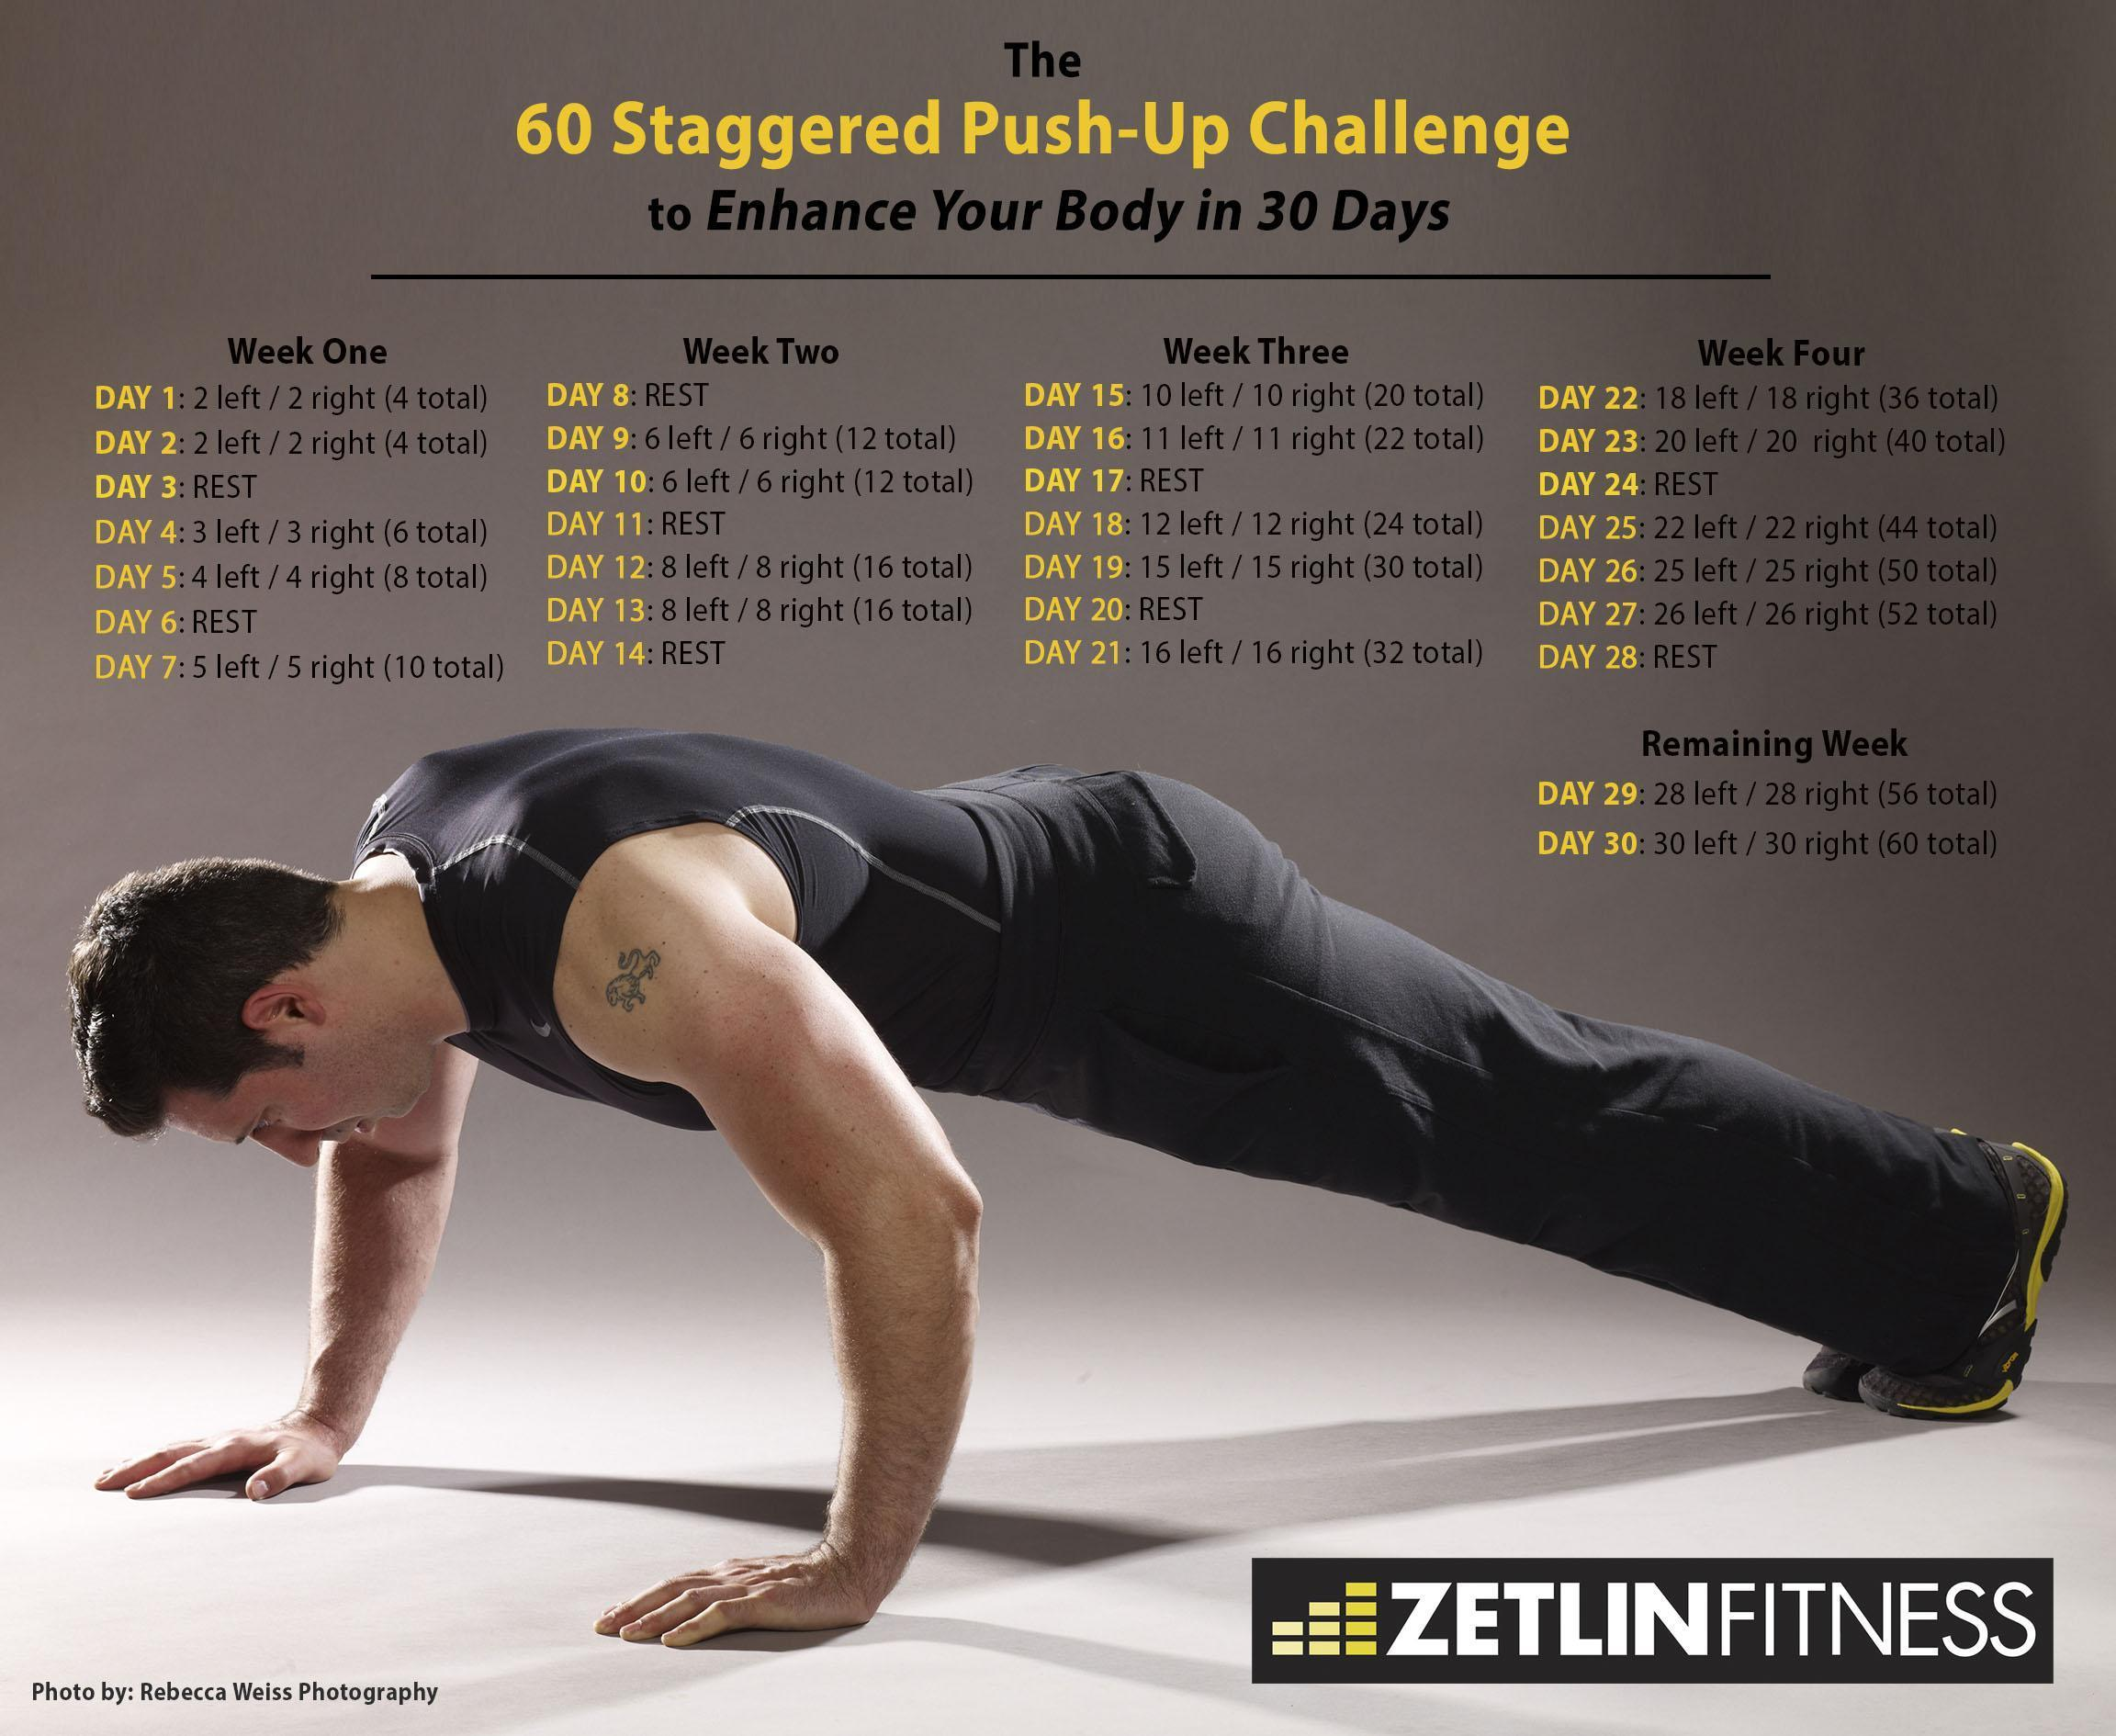 The 60 Staggered Push-up Challenge to Enhance Your Body in